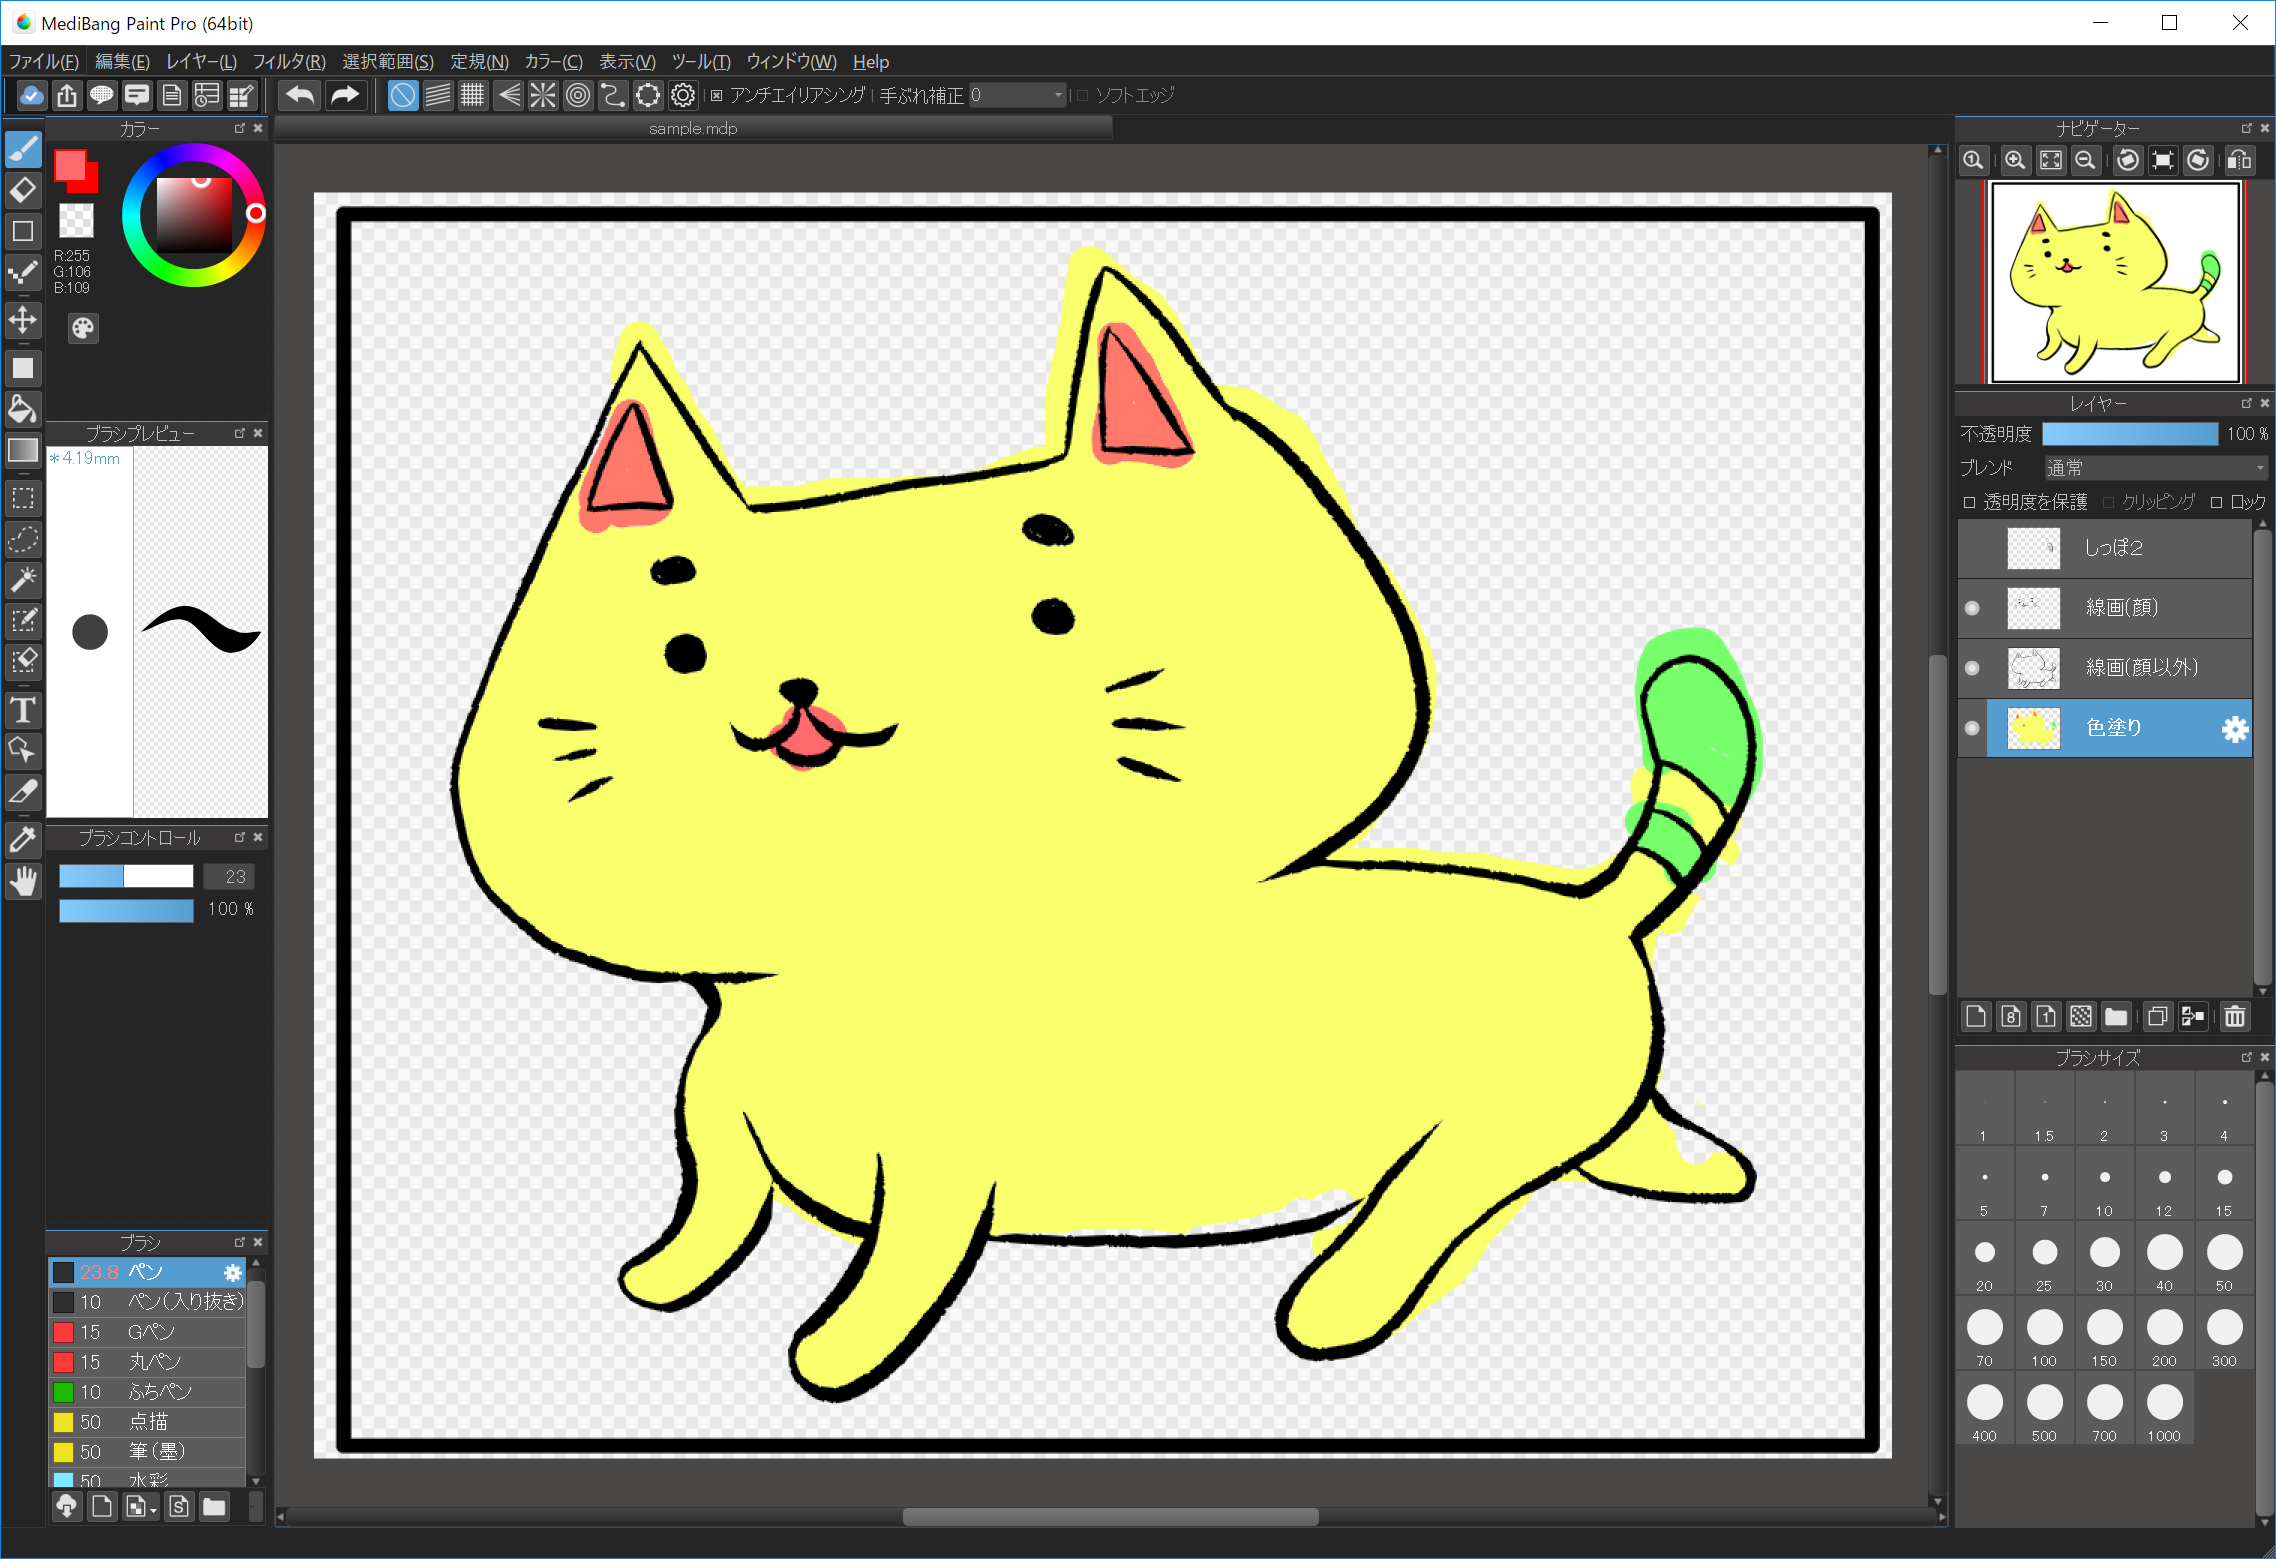 I tried painting the cat with yellow